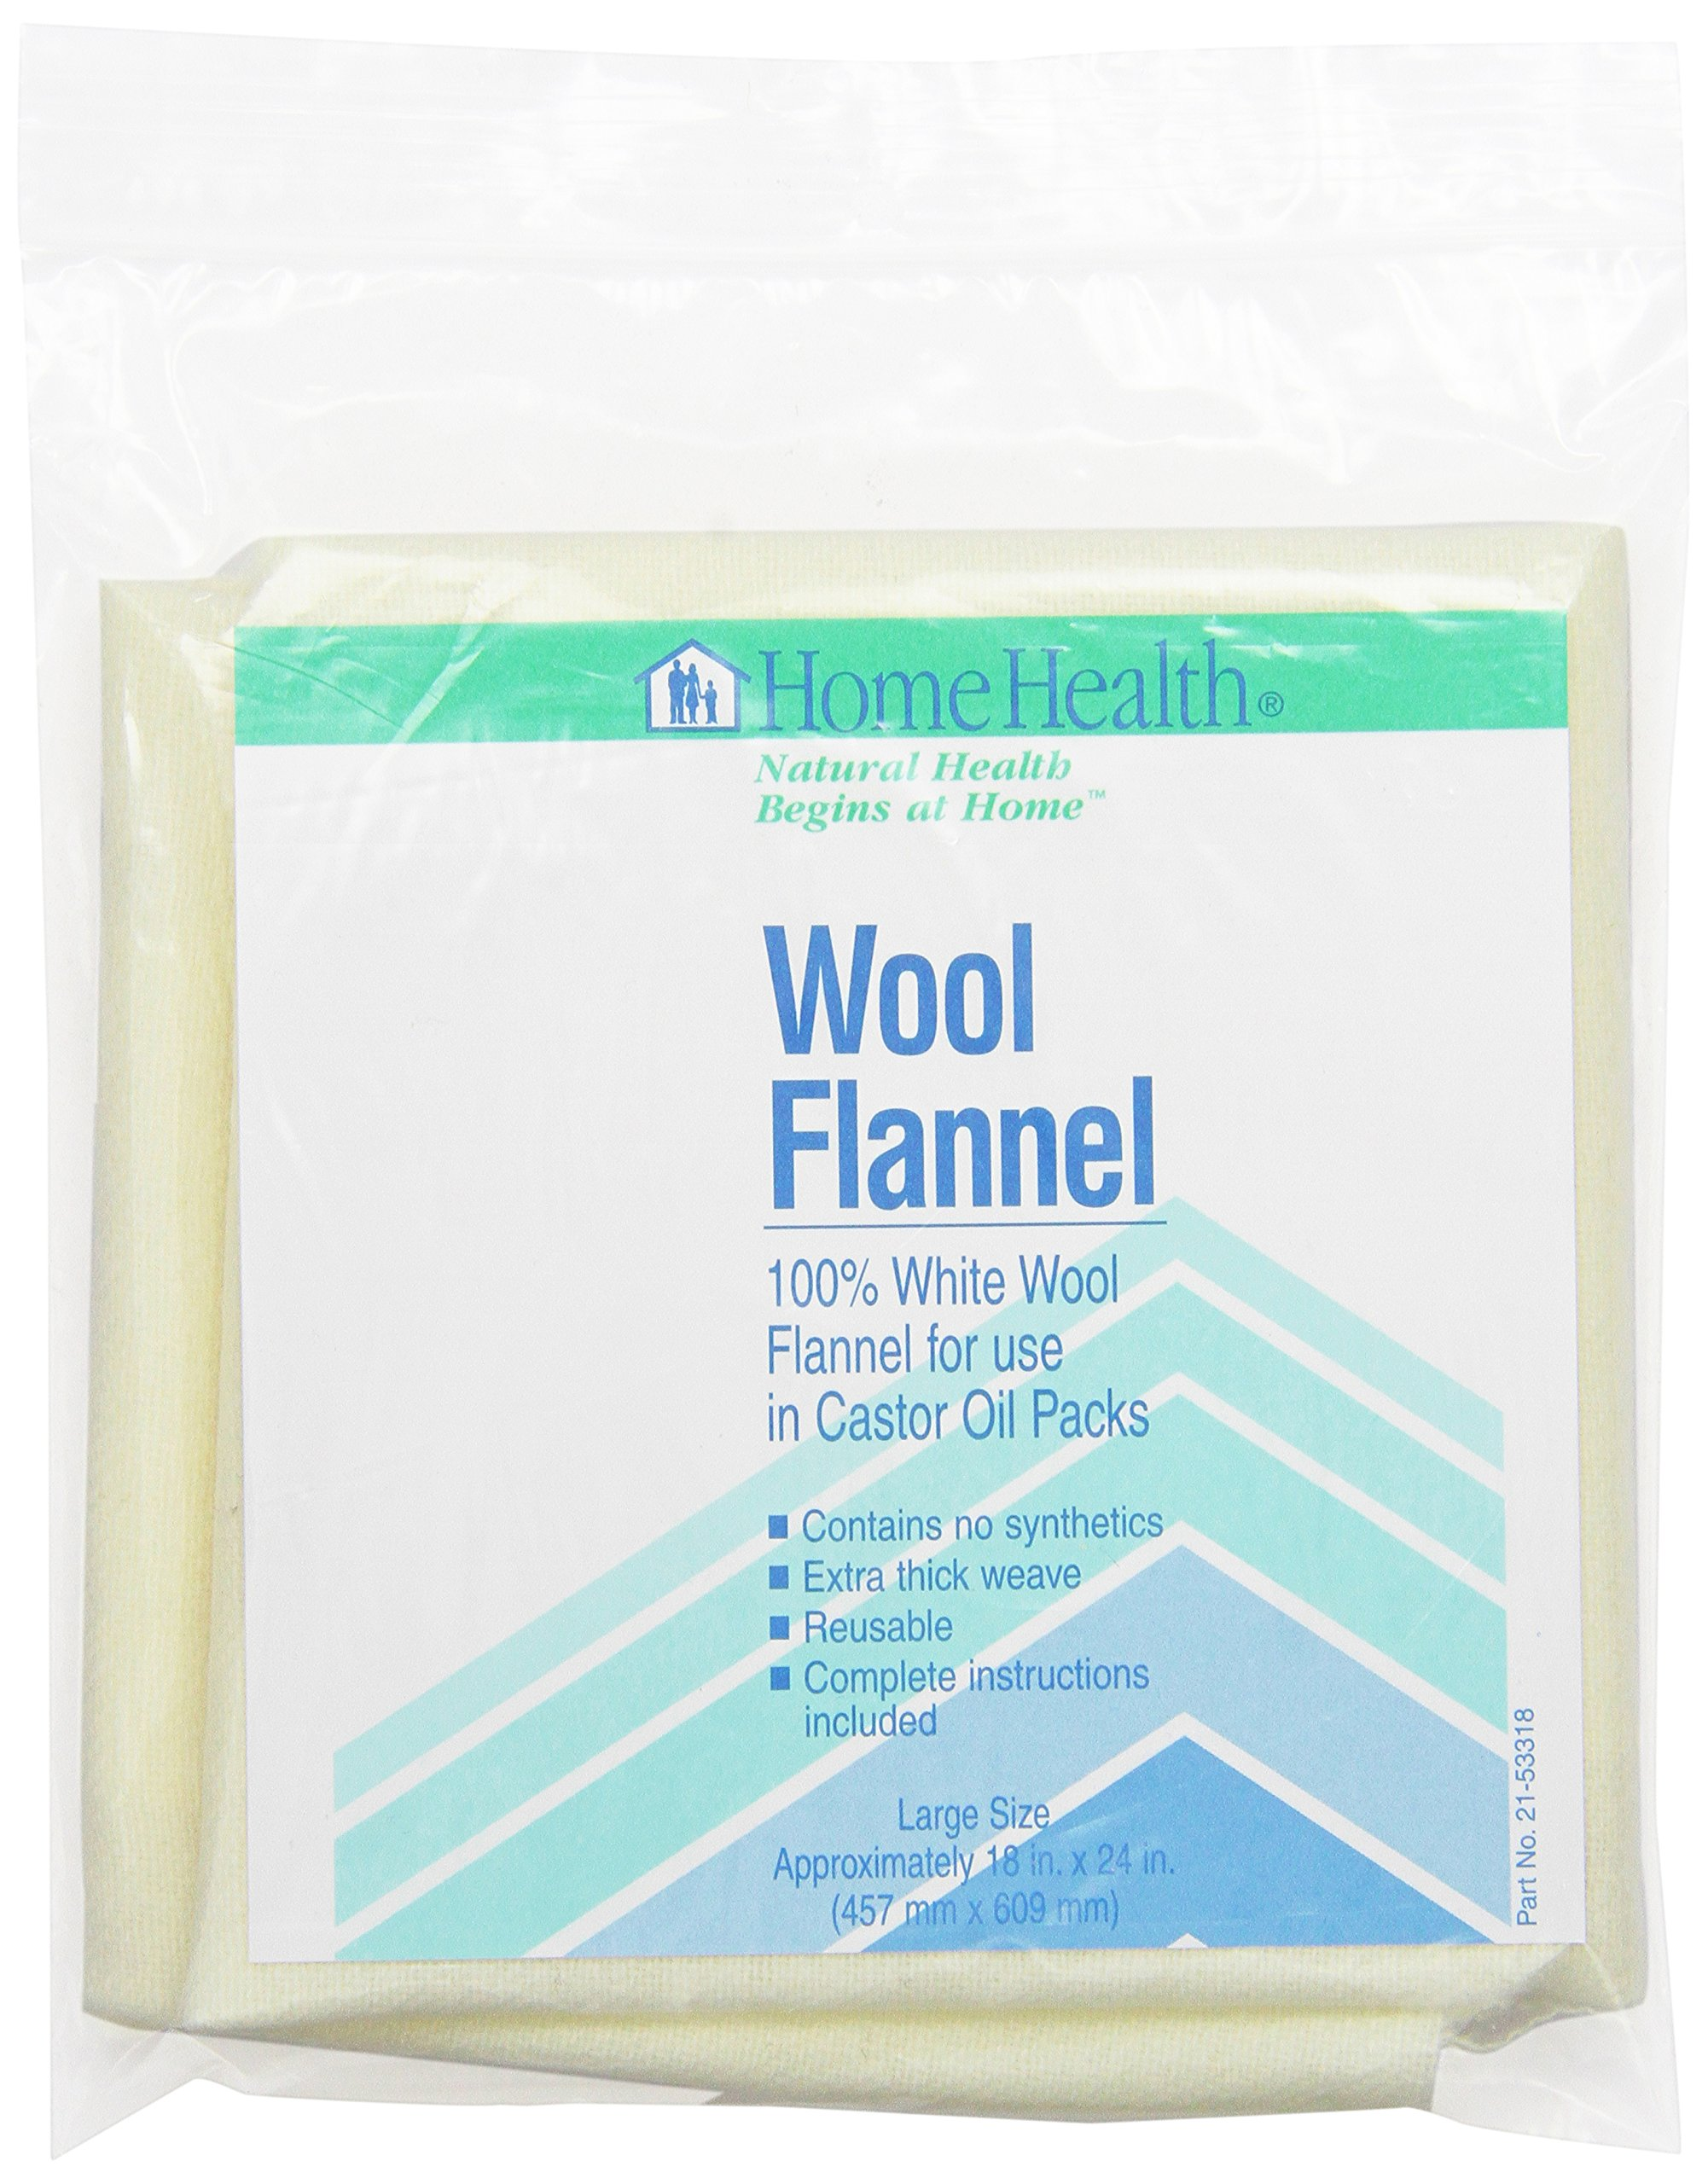 Home Health Wool Flannel, Large